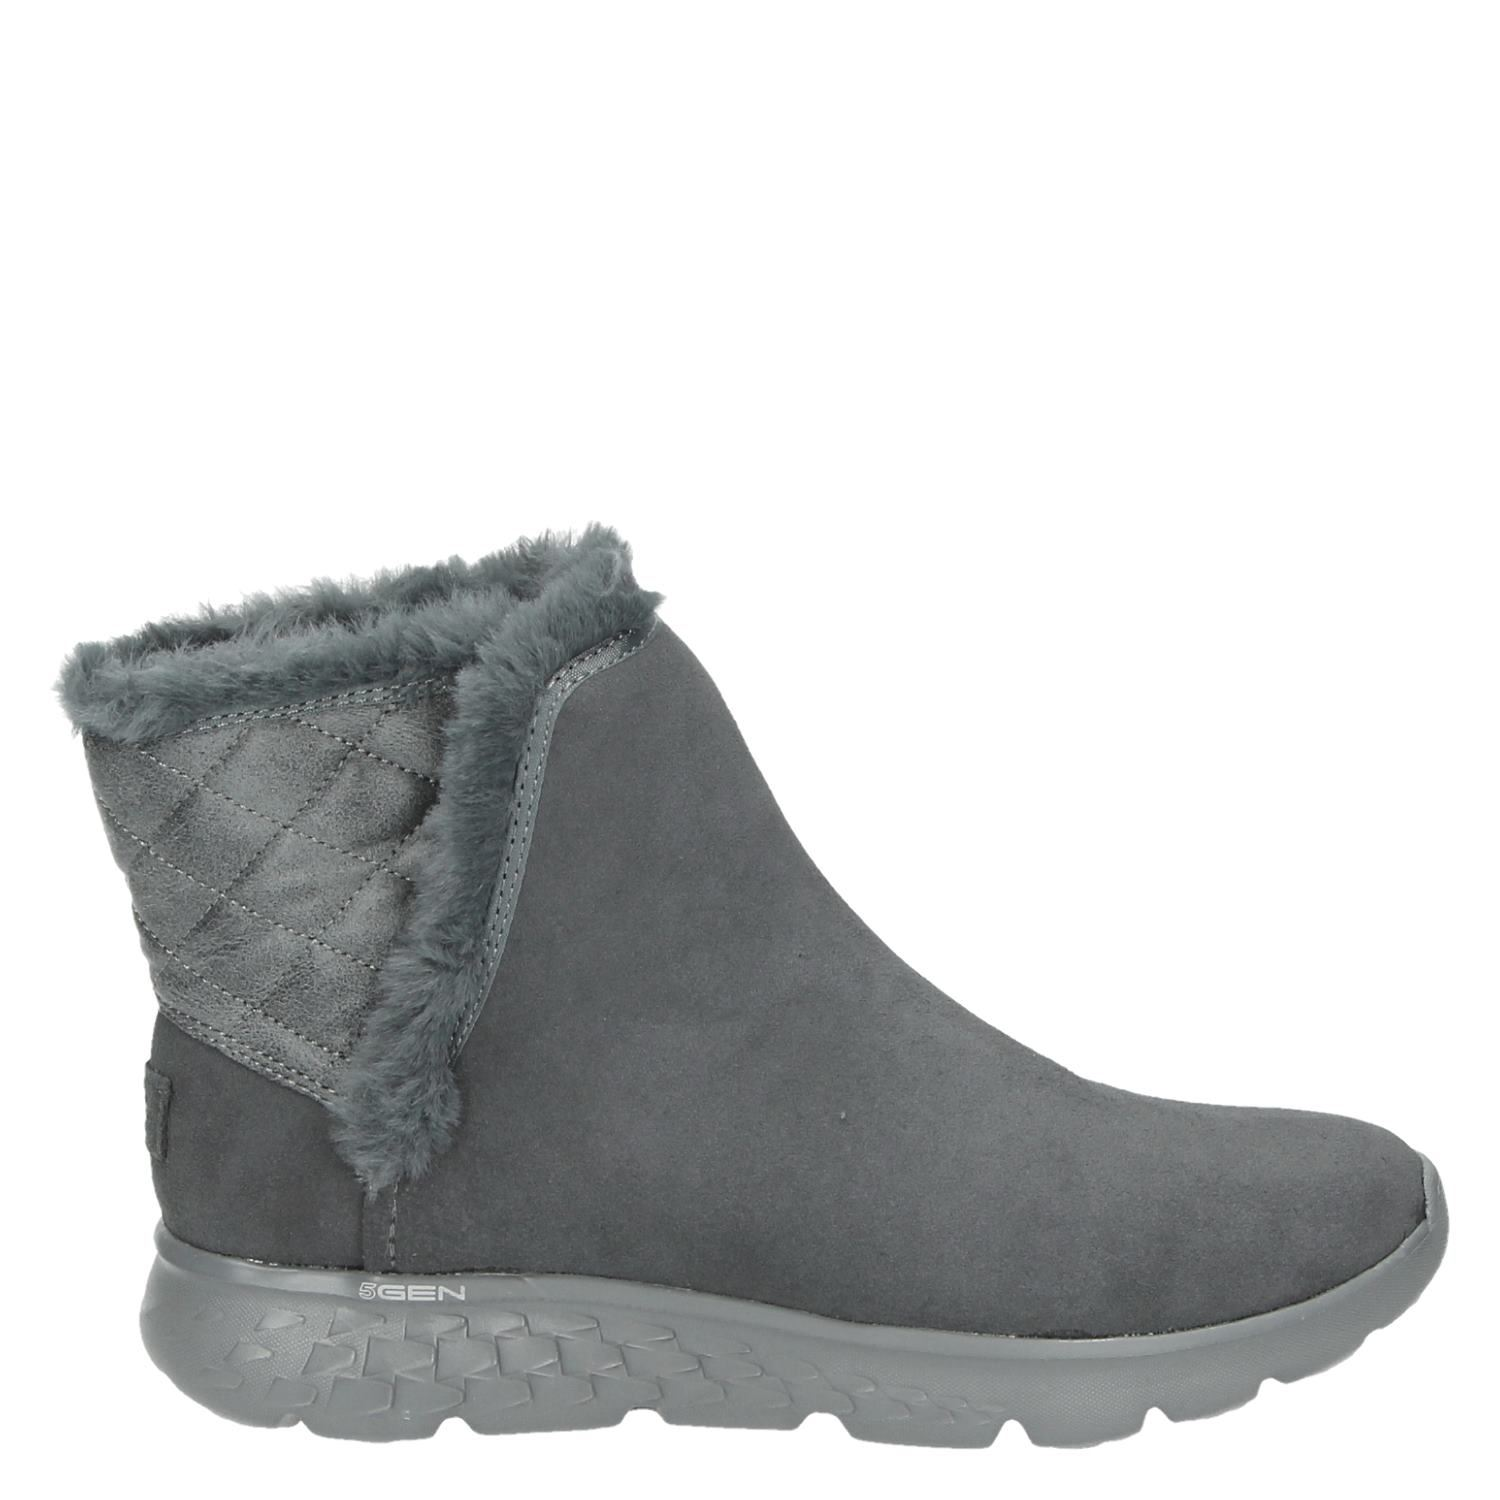 Skechers Dames Skechers Dames Rits And Gesloten Boots Grijs